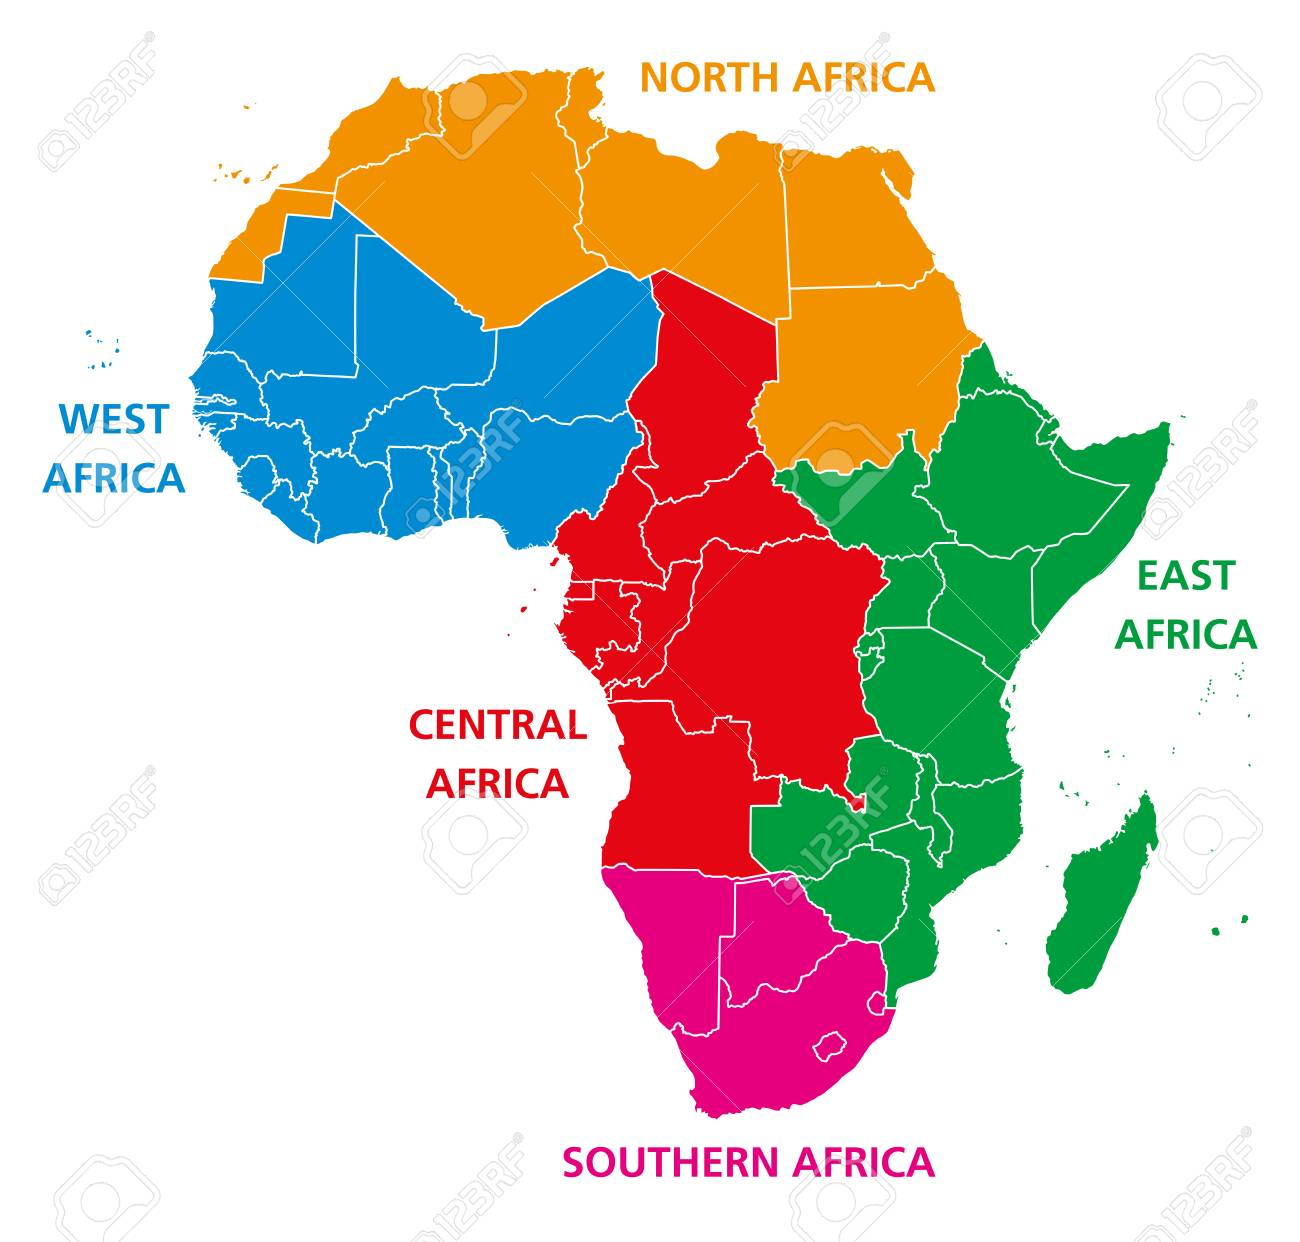 Regions Of Africa, Political Map, United Nations Geo Scheme With